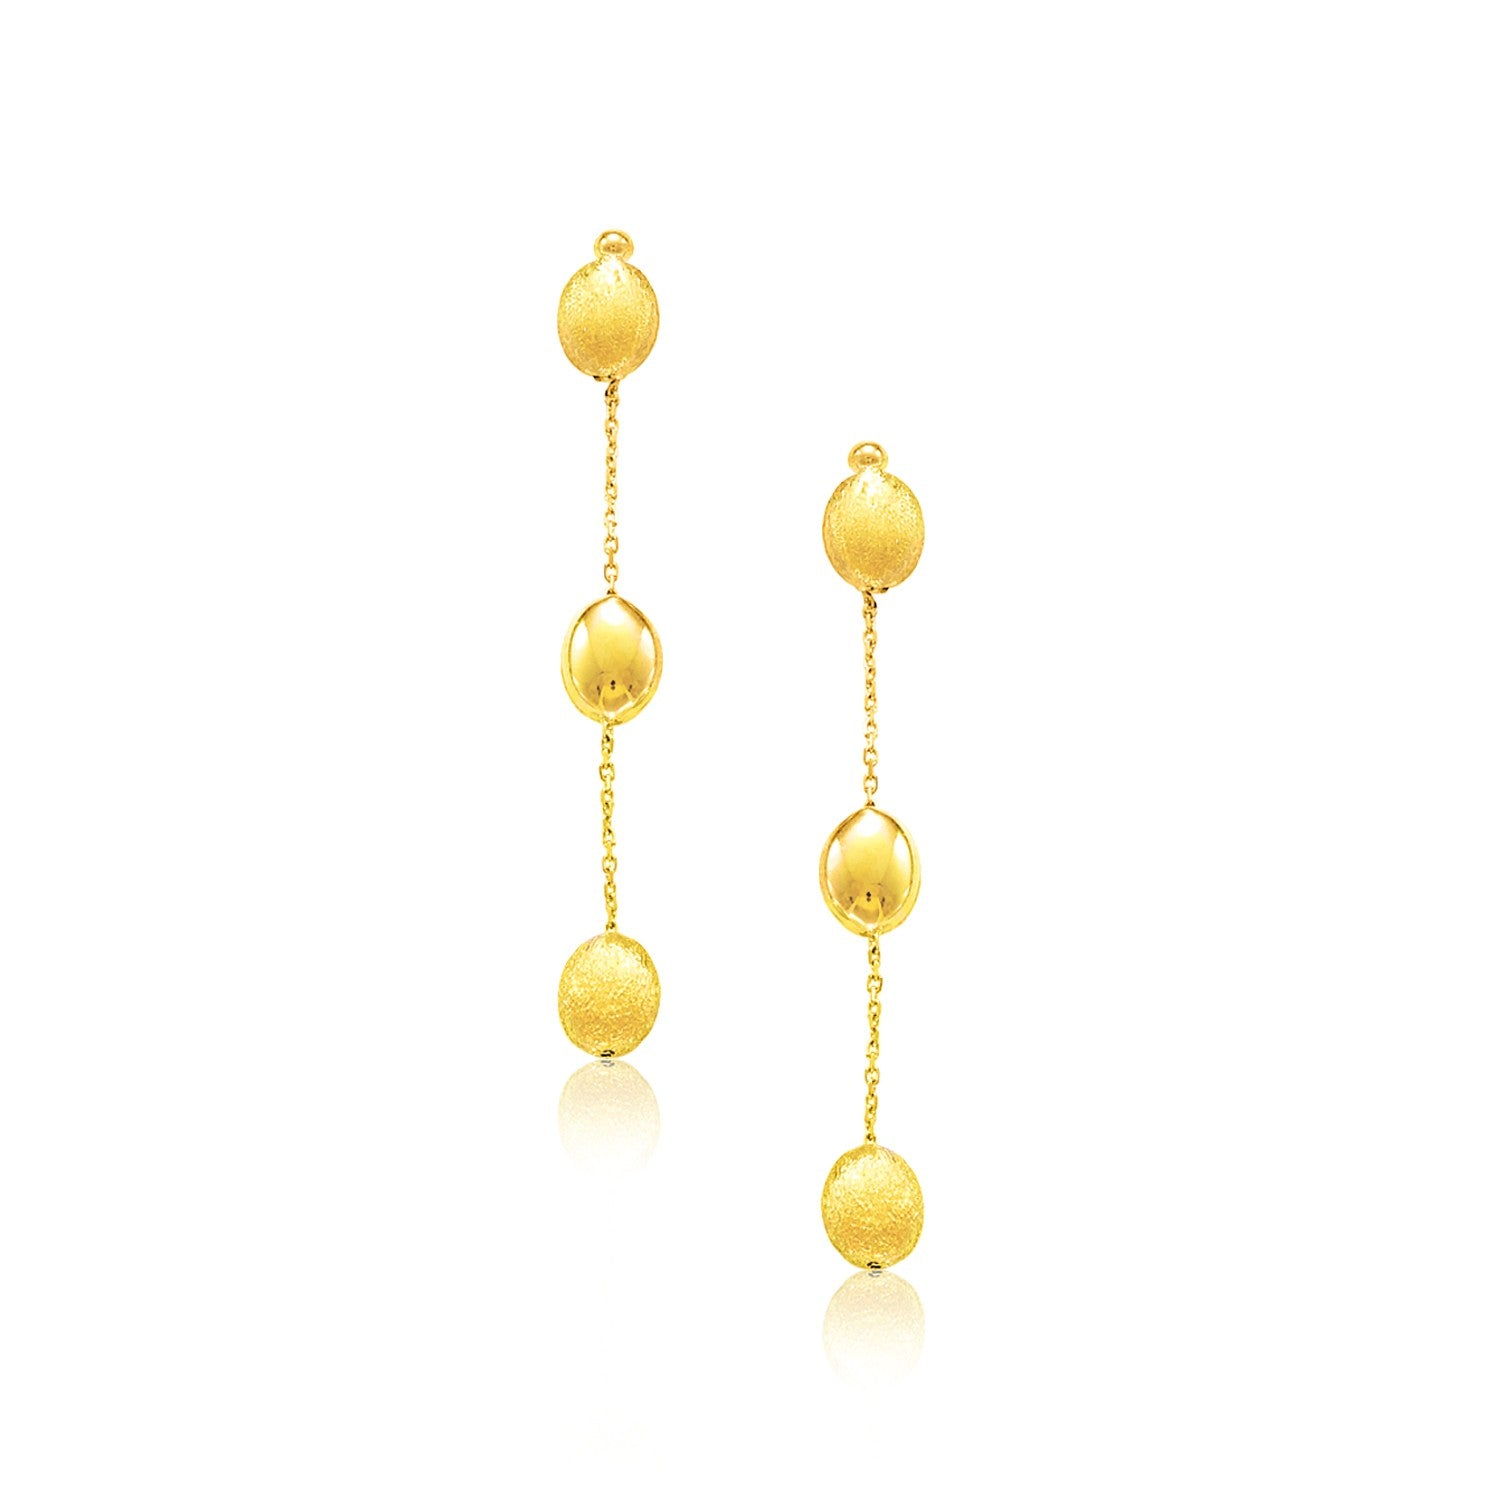 14K Yellow Gold Textured and Shiny Pebble Dangling Earrings